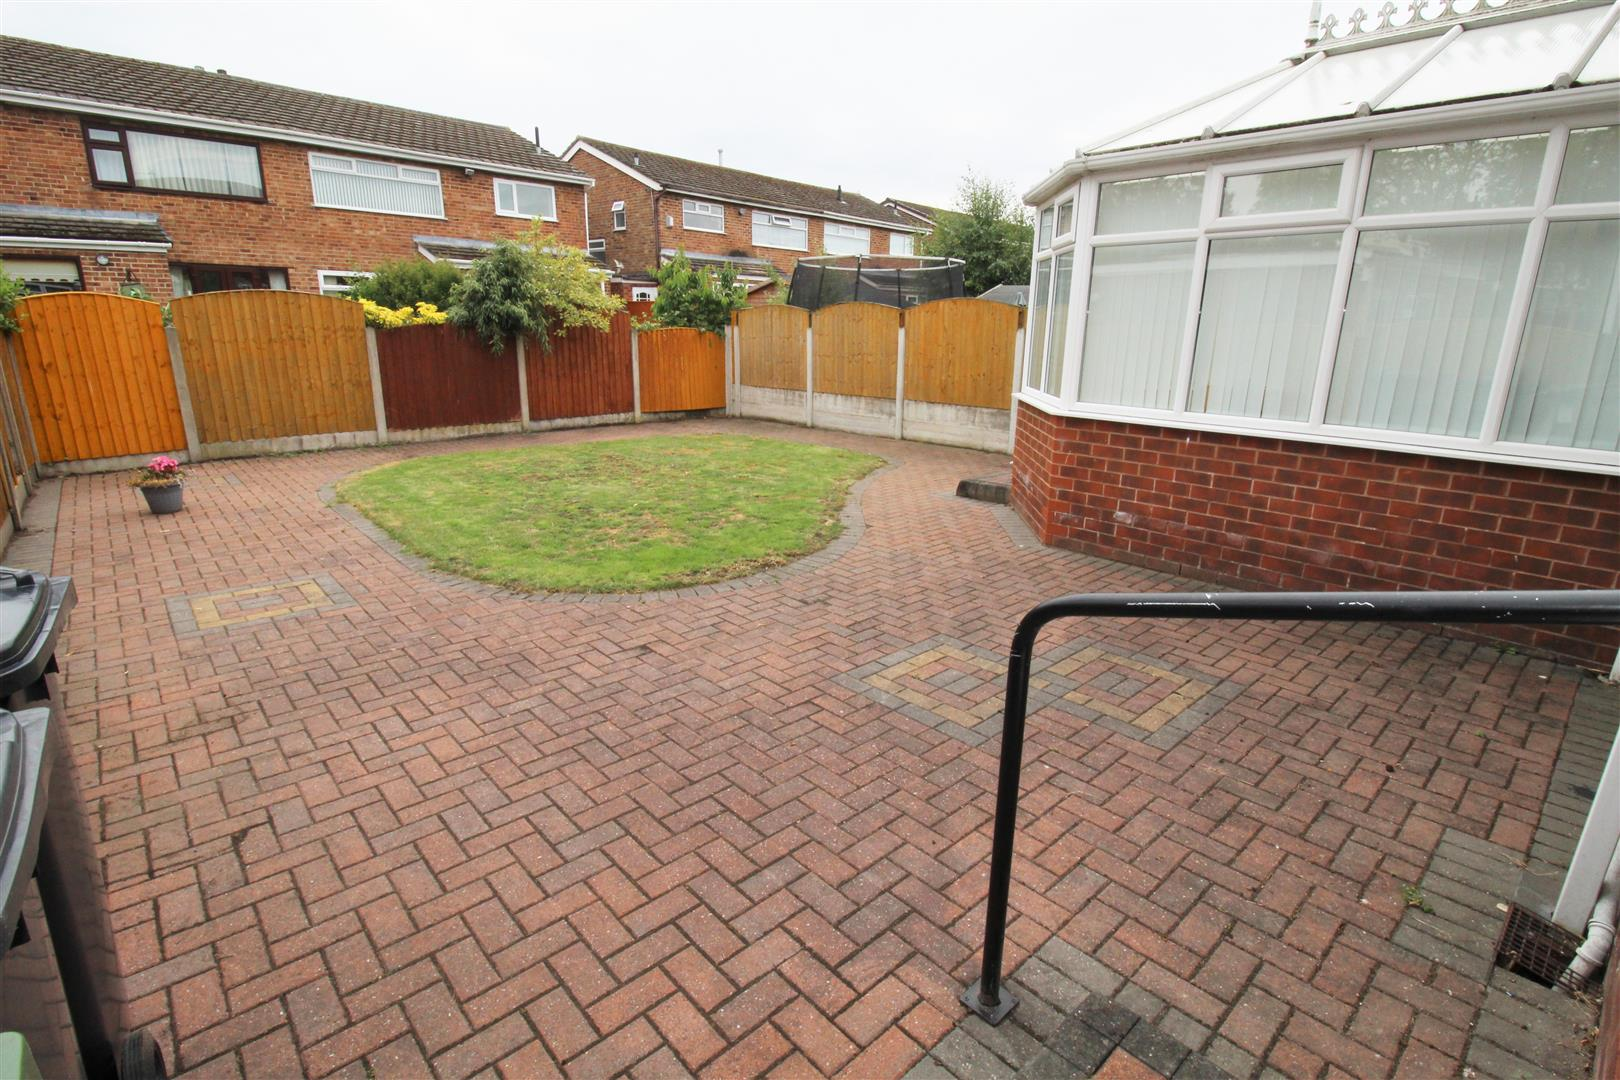 3 Bedrooms, House - Semi-Detached, Exeter Close, Liverpool